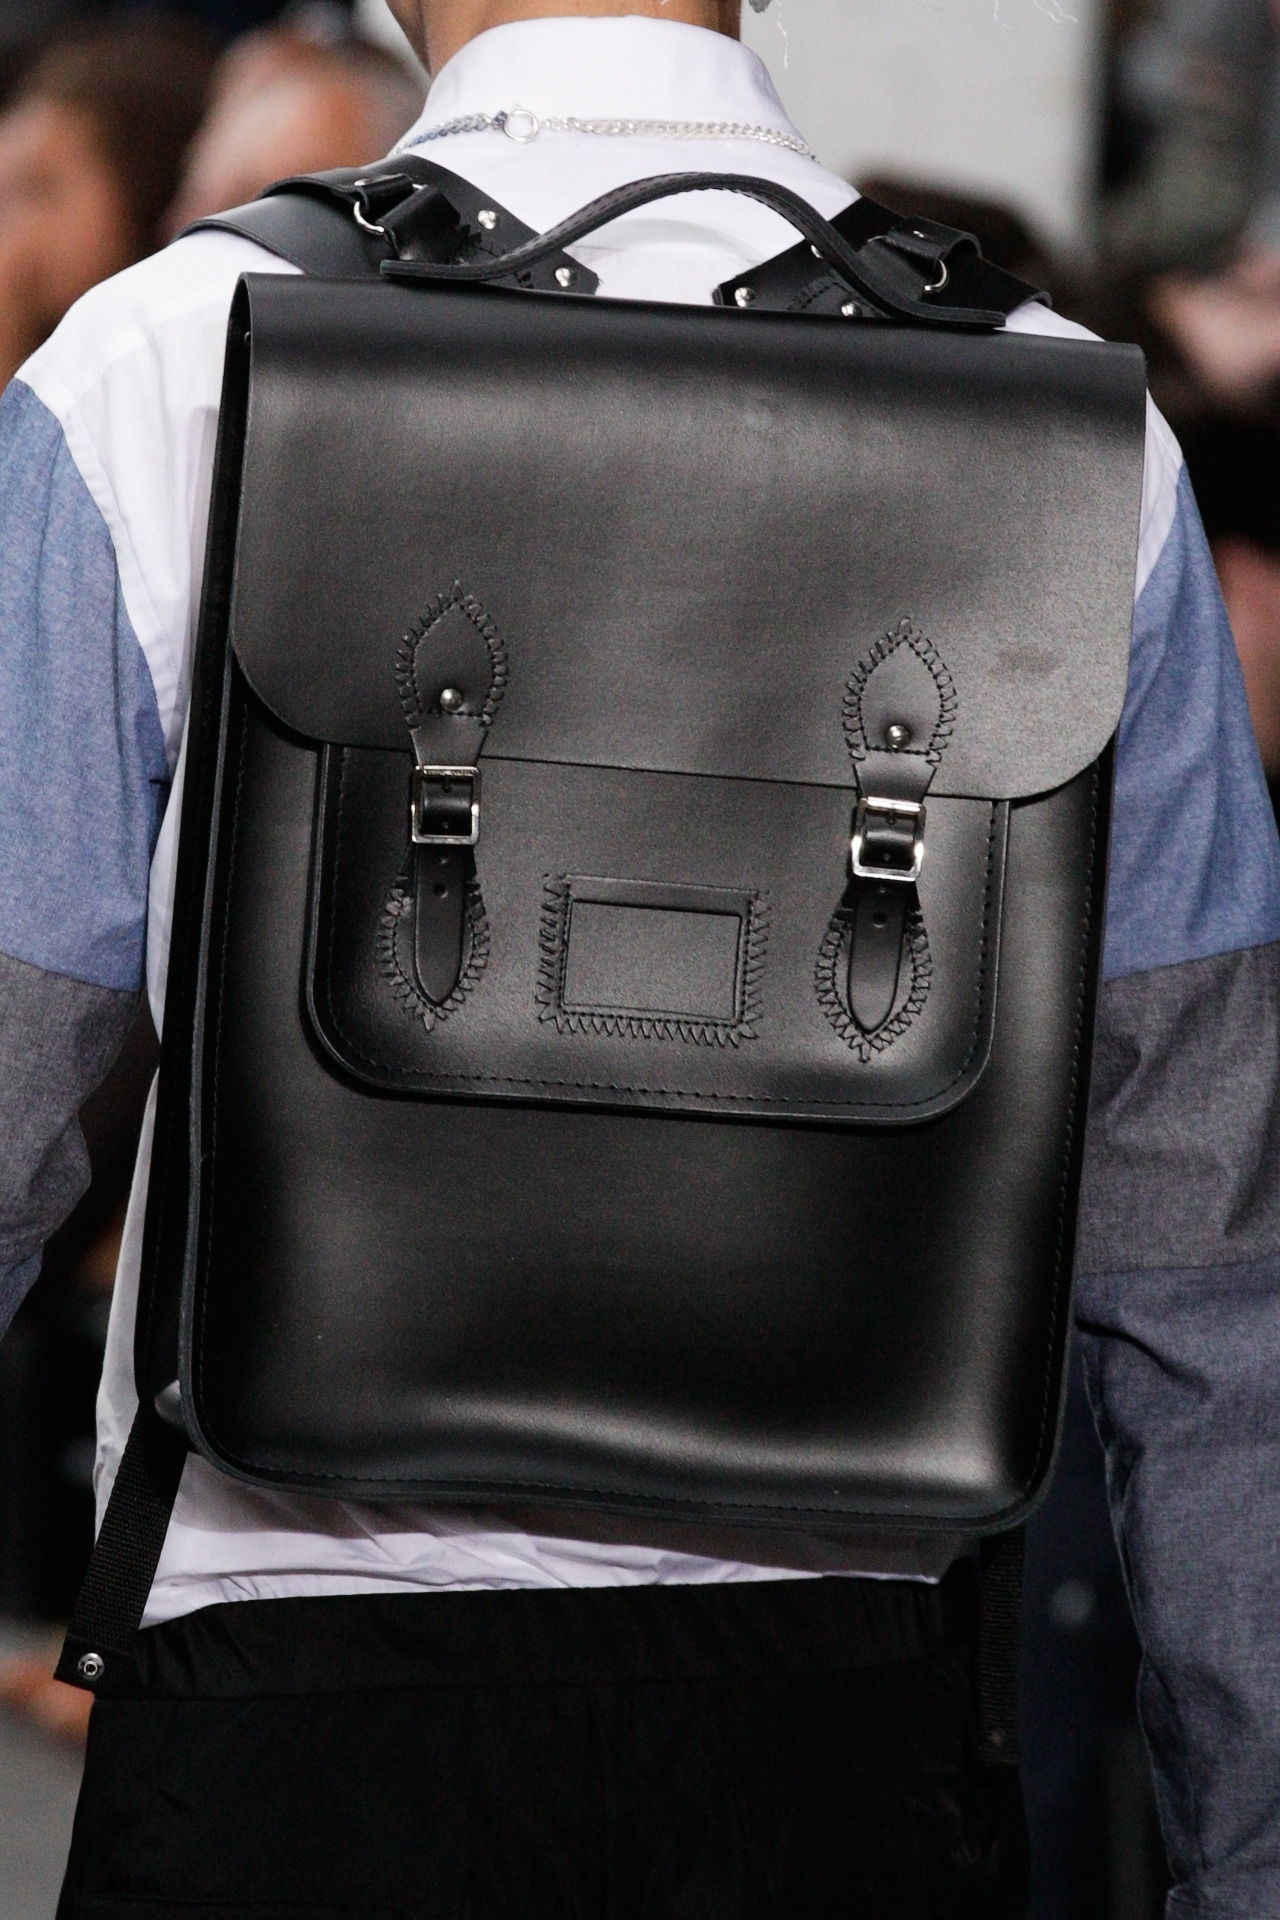 【CAMBRIDGE SATCHEL COMPANY X CHRISTOPHER SHANNON 2013 SPRING/SUMMER BACKPACK】 TRENDSPOT 详情